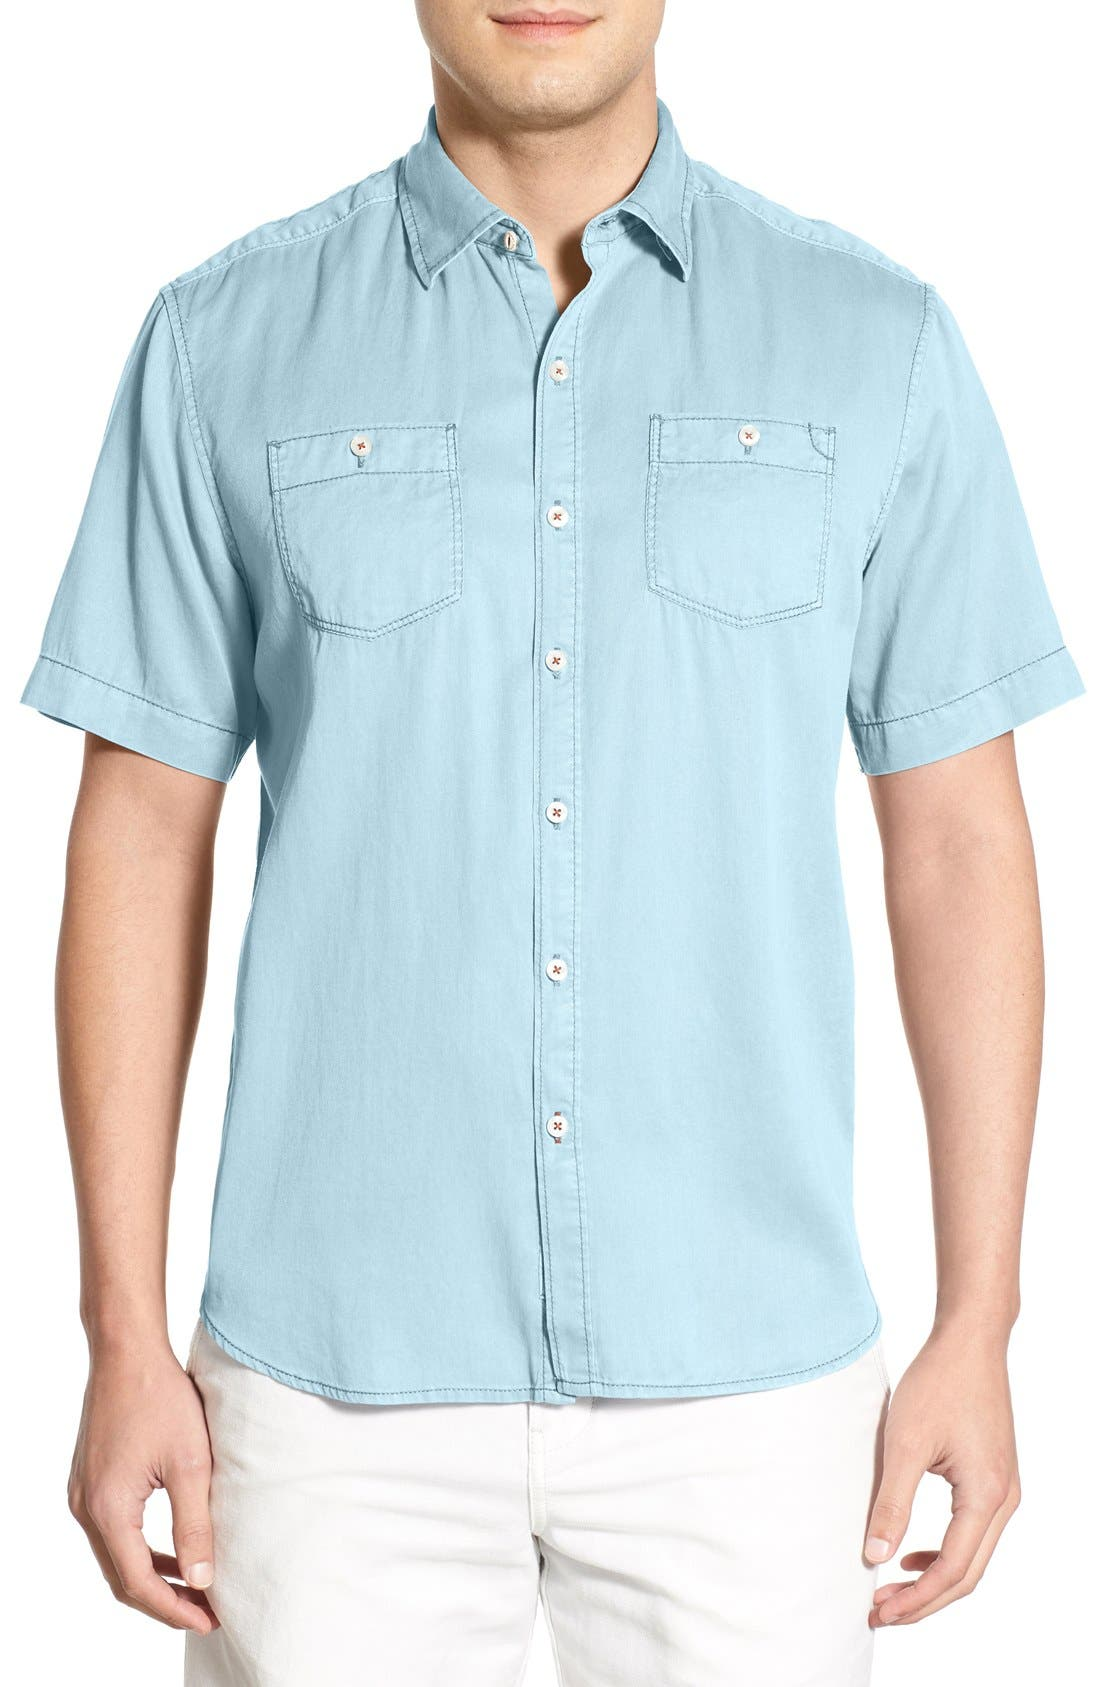 Alternate Image 1 Selected - Tommy Bahama 'New Twilly' Island Modern Fit Short Sleeve Twill Shirt